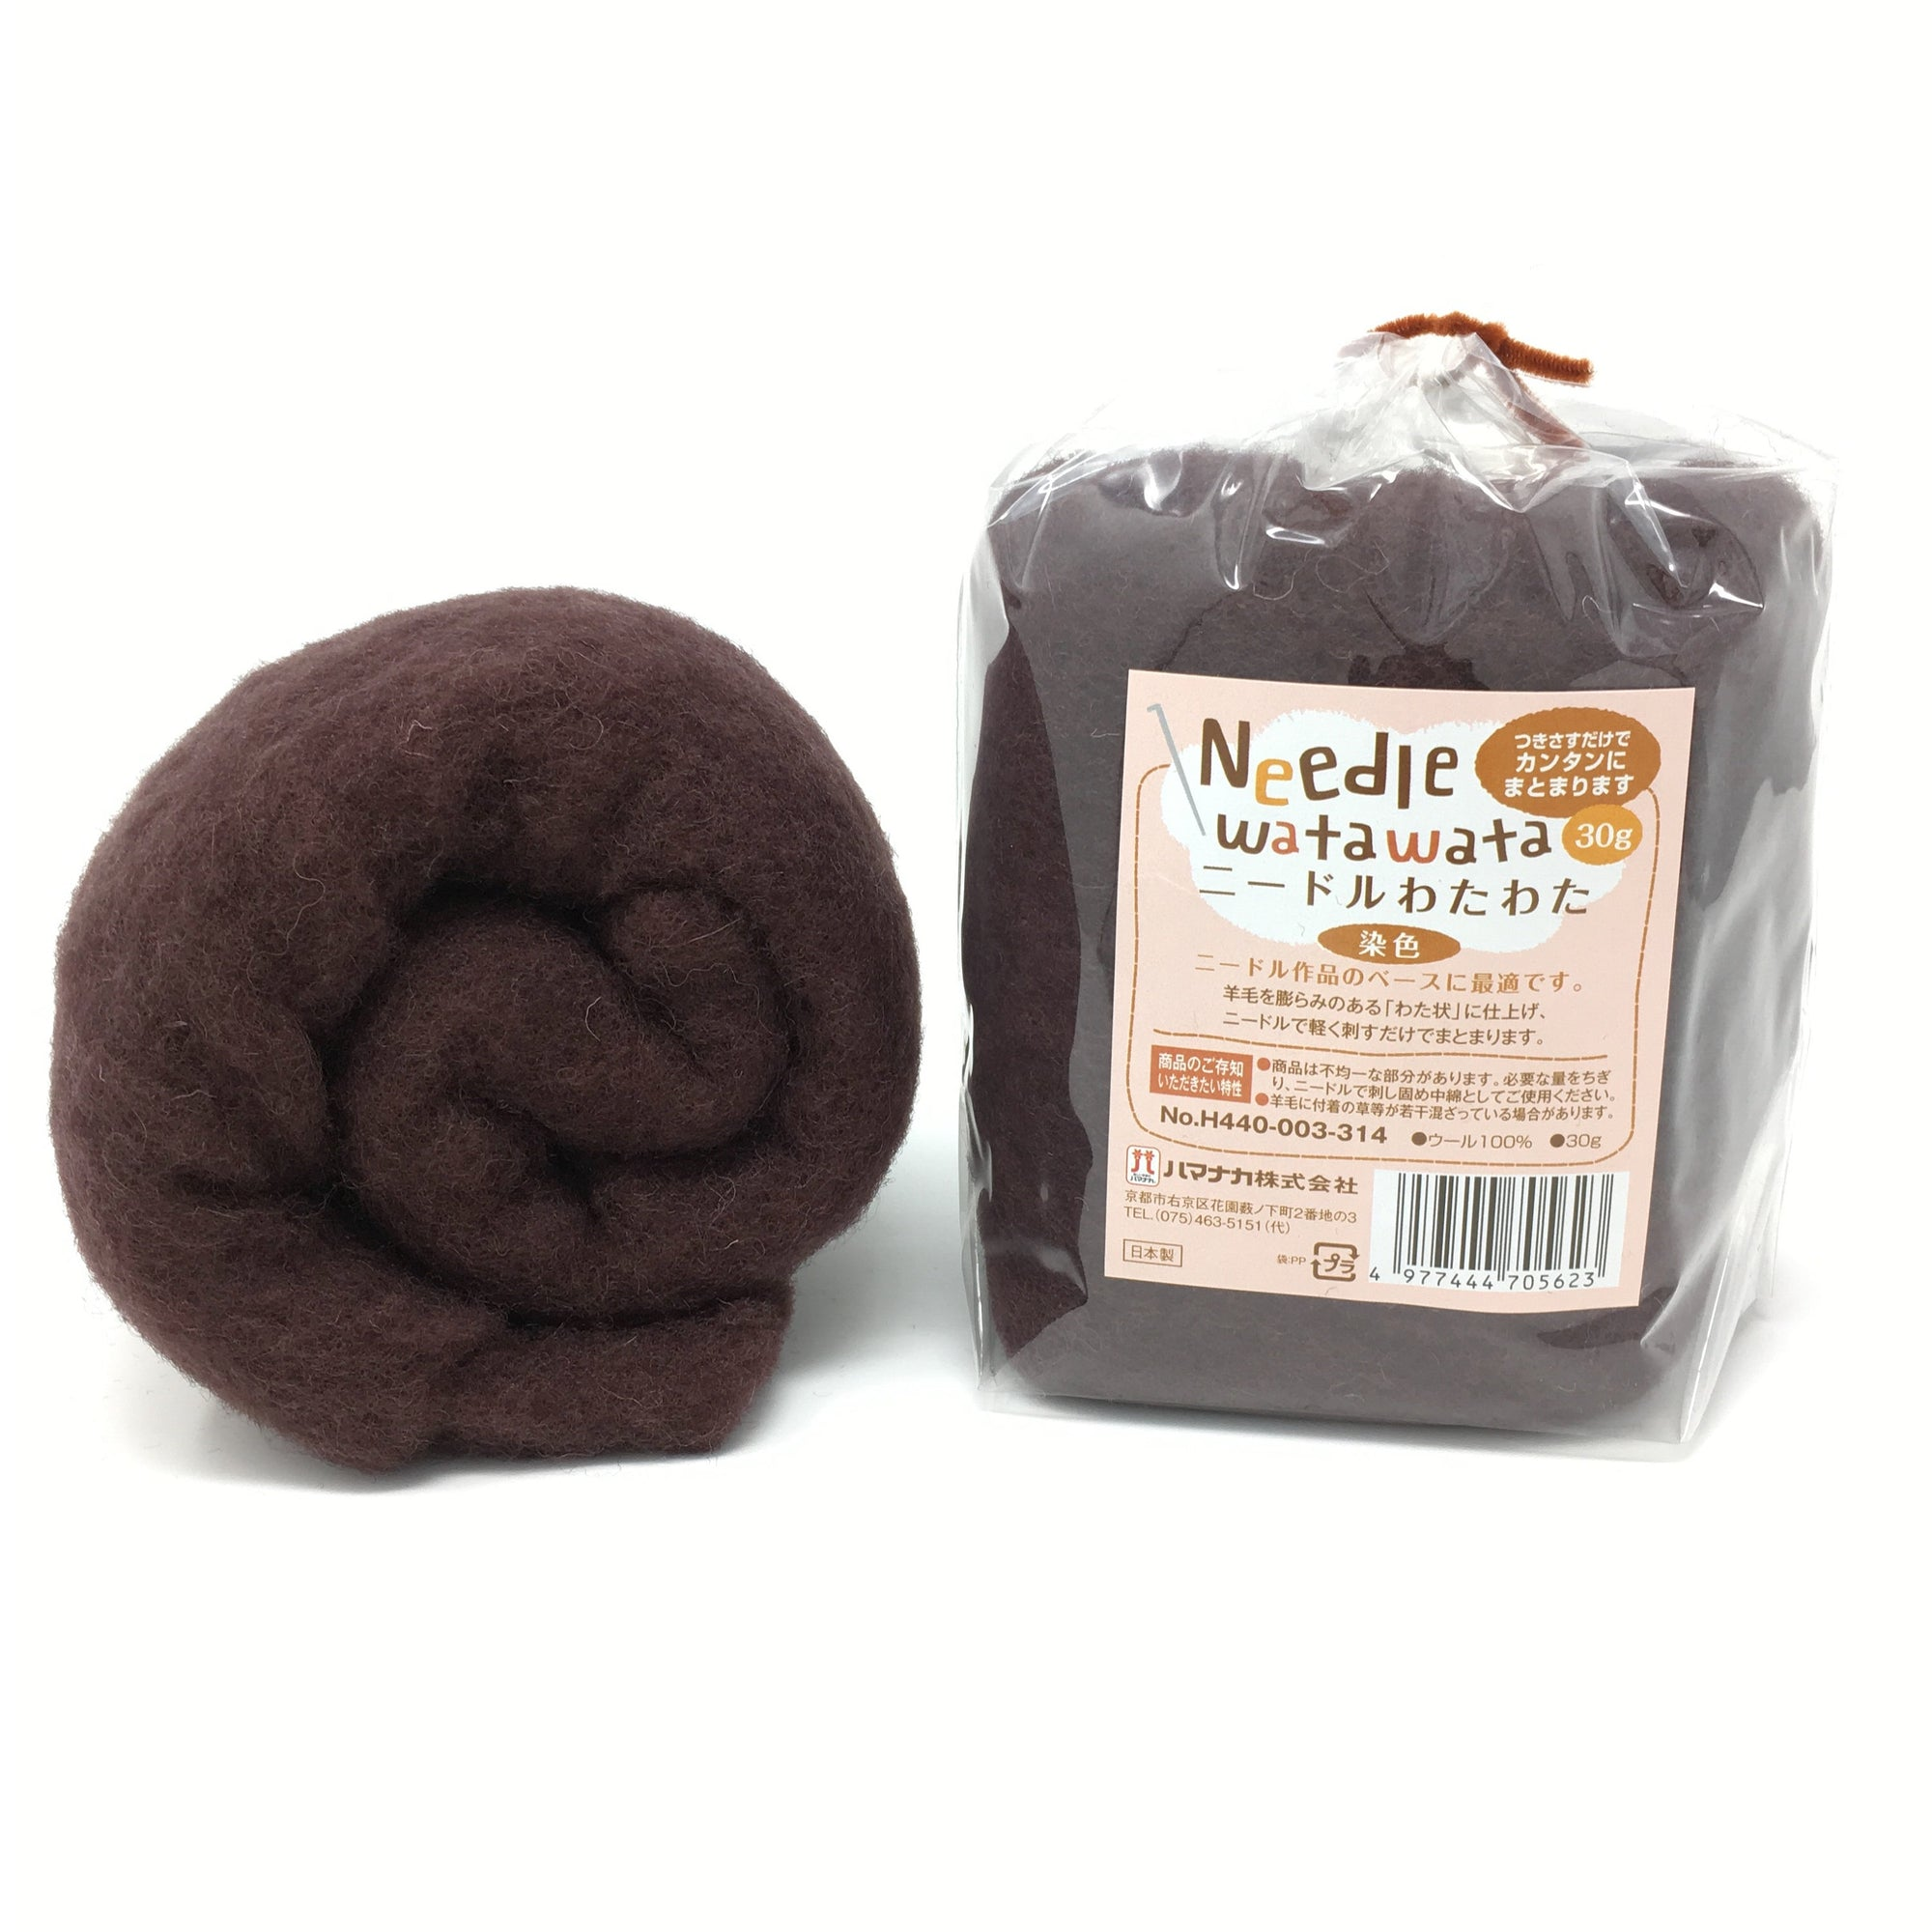 Hamanaka Needle Watawata Core Wool Batt - 30g Dark Brown